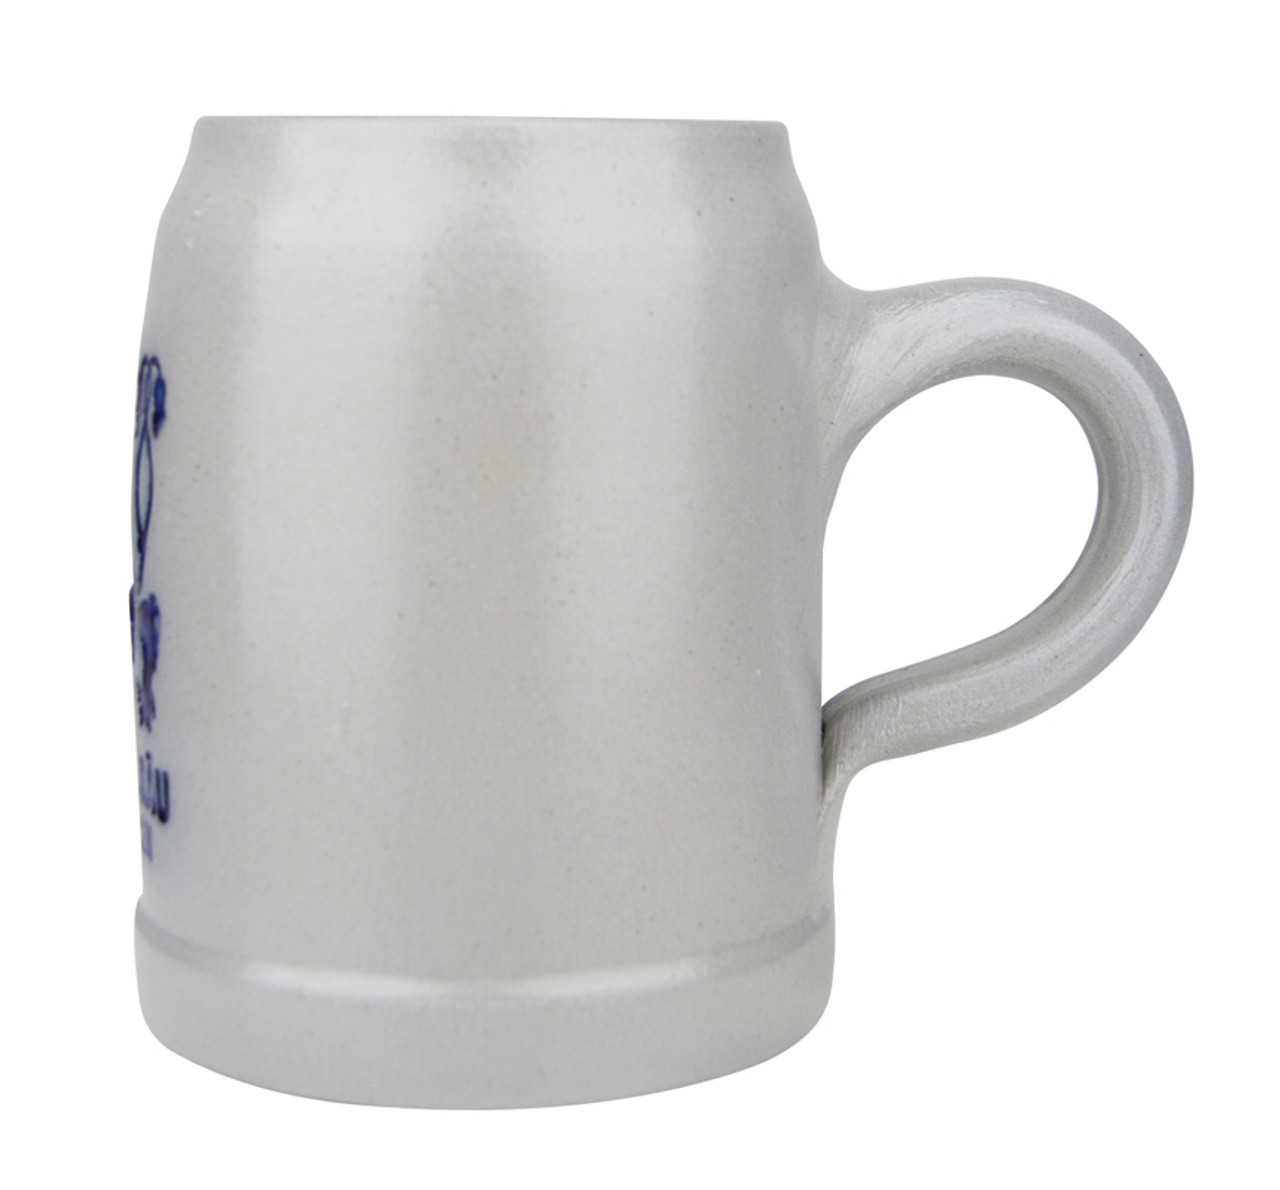 .5 Liter Fill Mark on Front of Brewery Mug